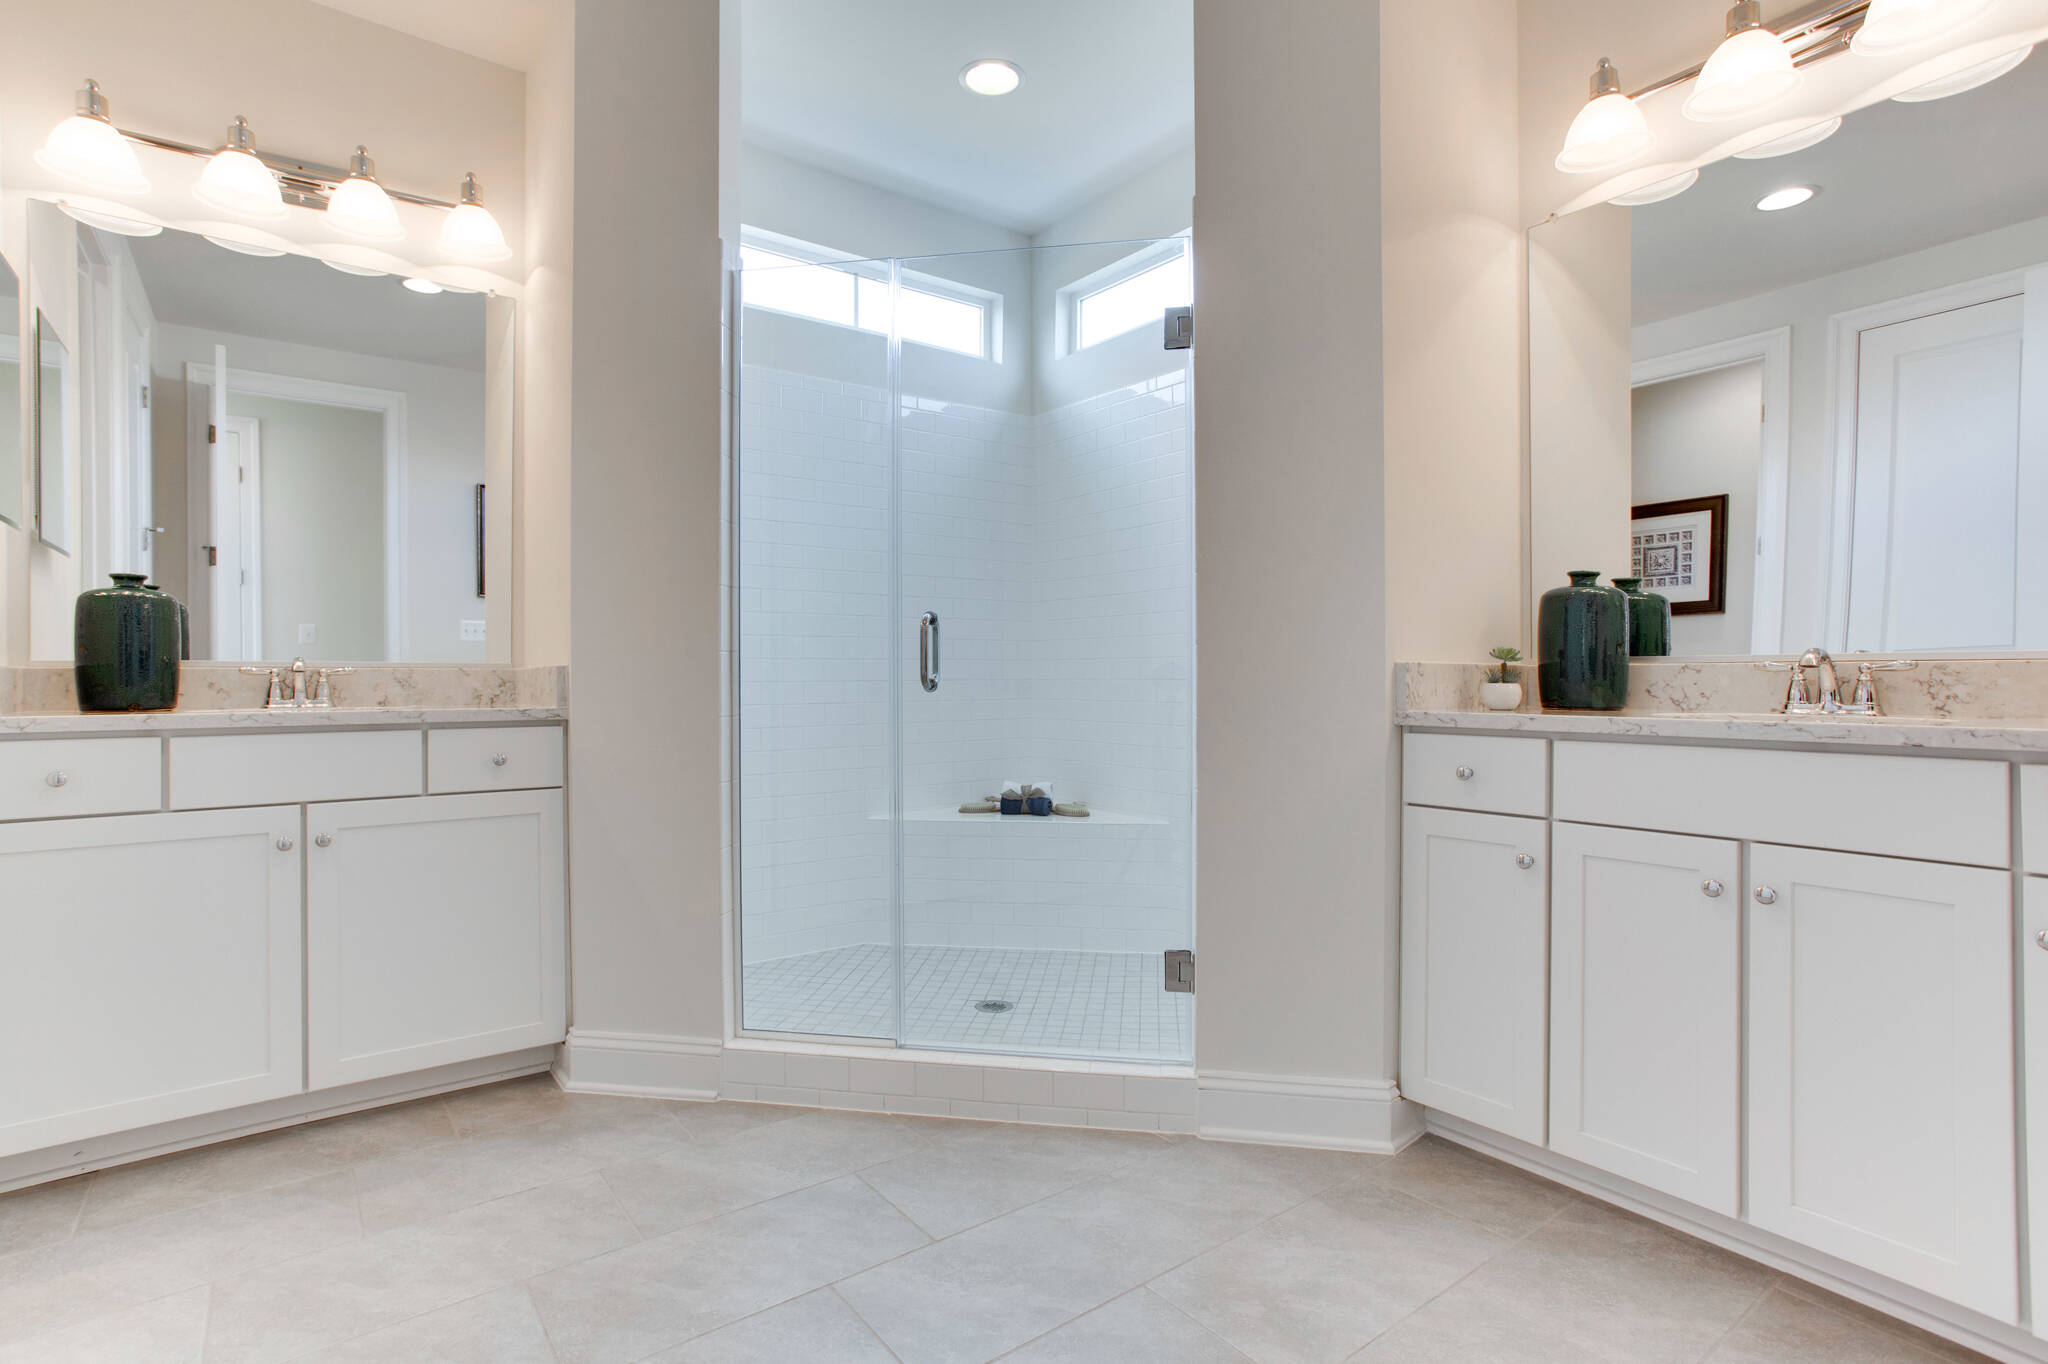 VA_GreensHearthCollection_Avondale_Interior_OwnersBath